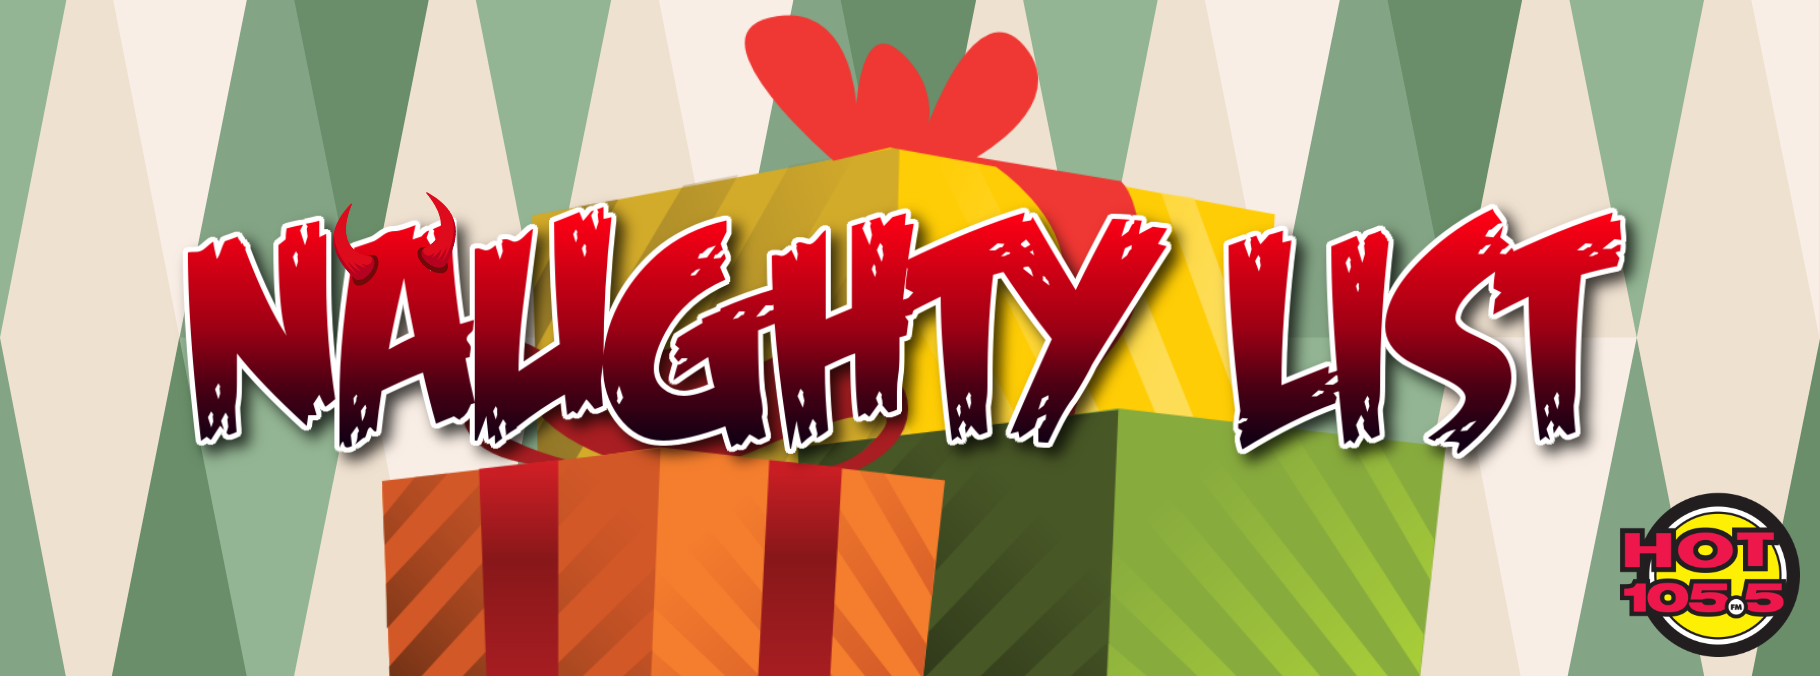 Feature: /naughtylist